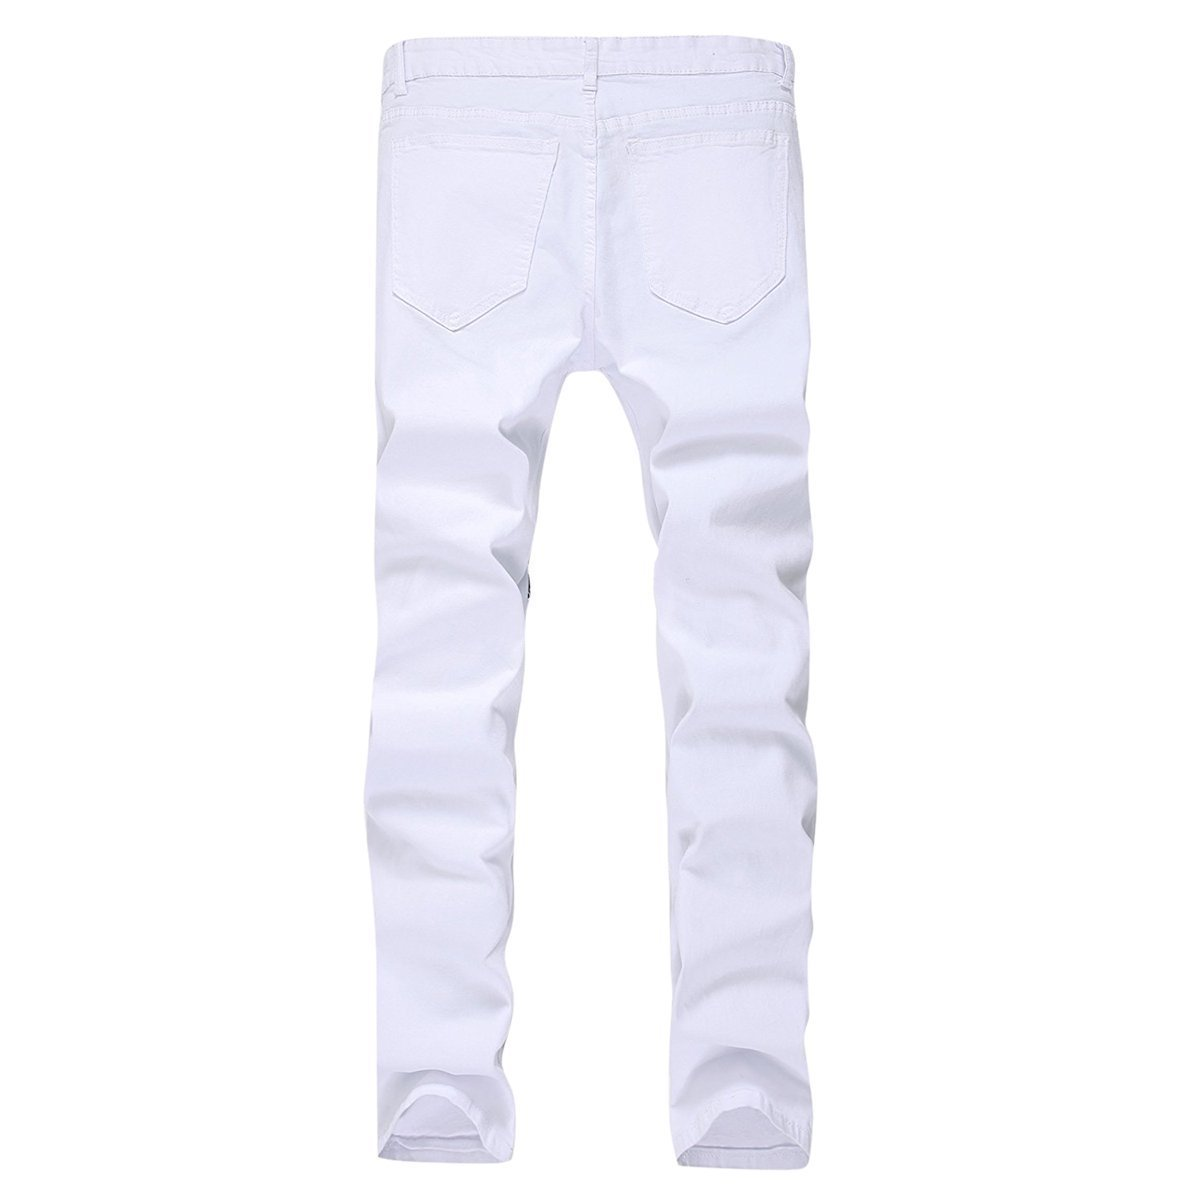 TOPING Fine Fashion;Handsome Men's Distressed Jeans Zipper Stretch Tapered Leg Slim Fit Ripped Jeans White1Tagsize30=USsize29